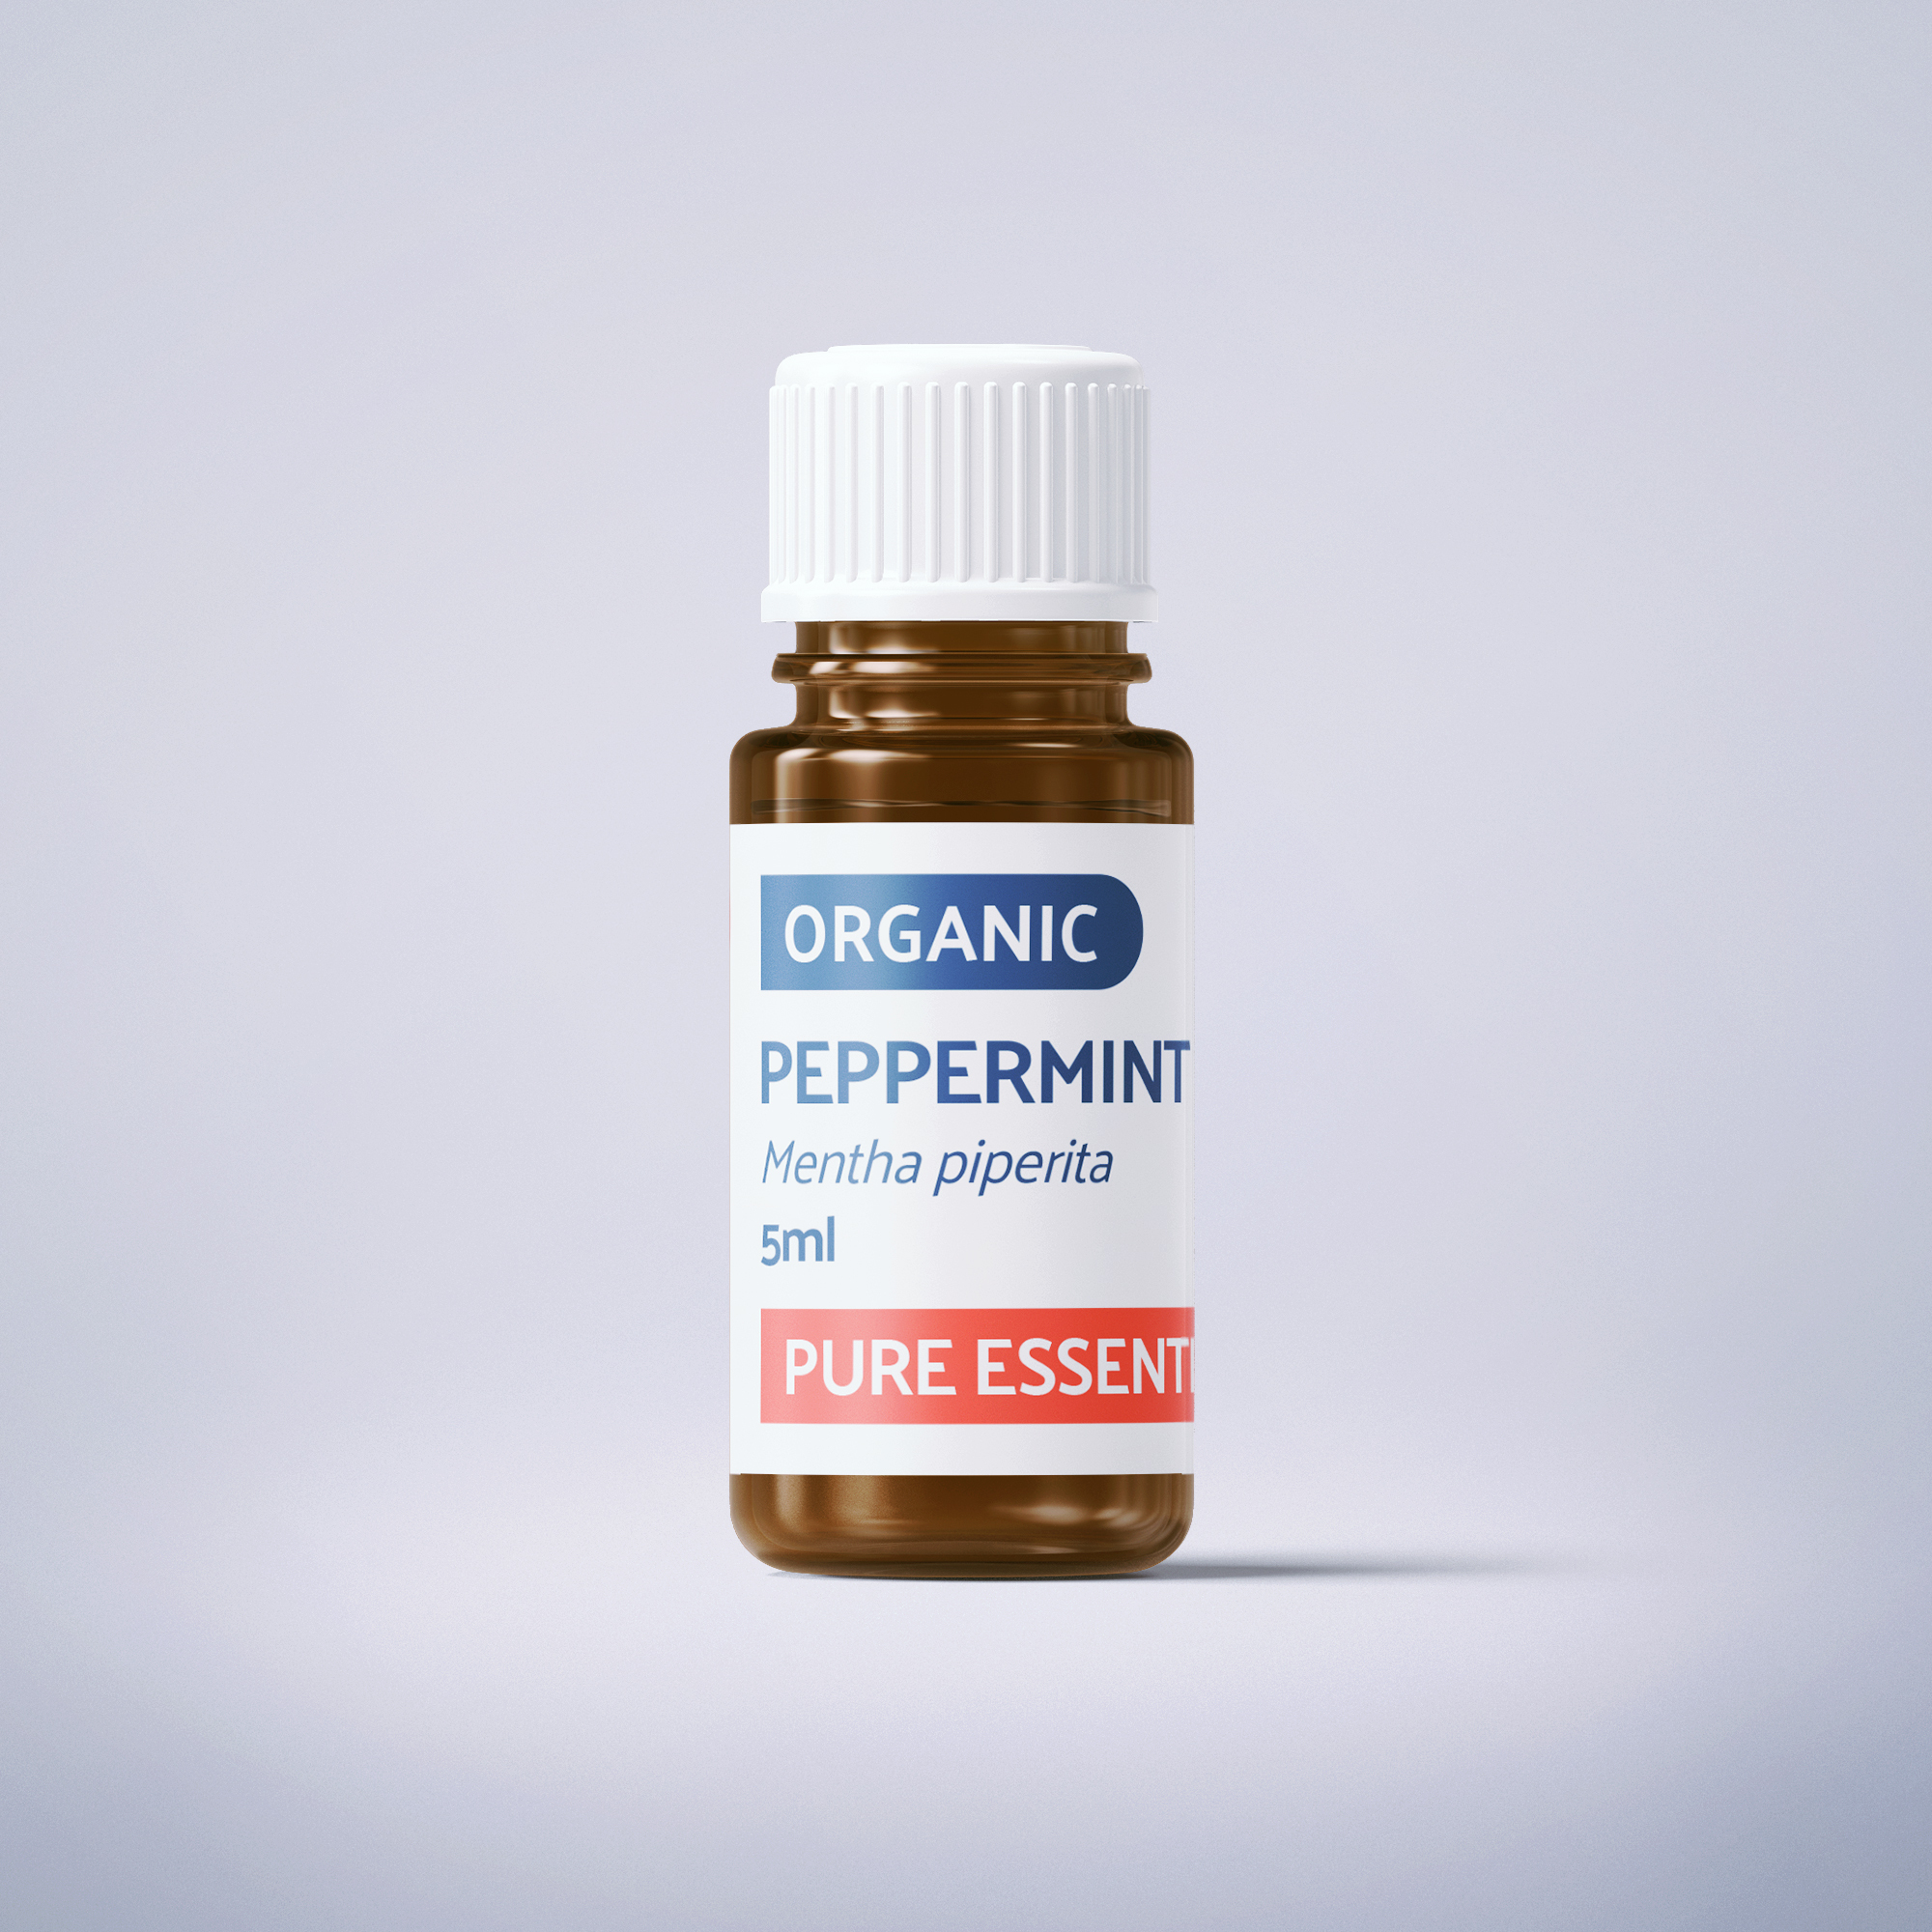 Organic Peppermint - 5ml - 100% Pure Essential Oil SKU005